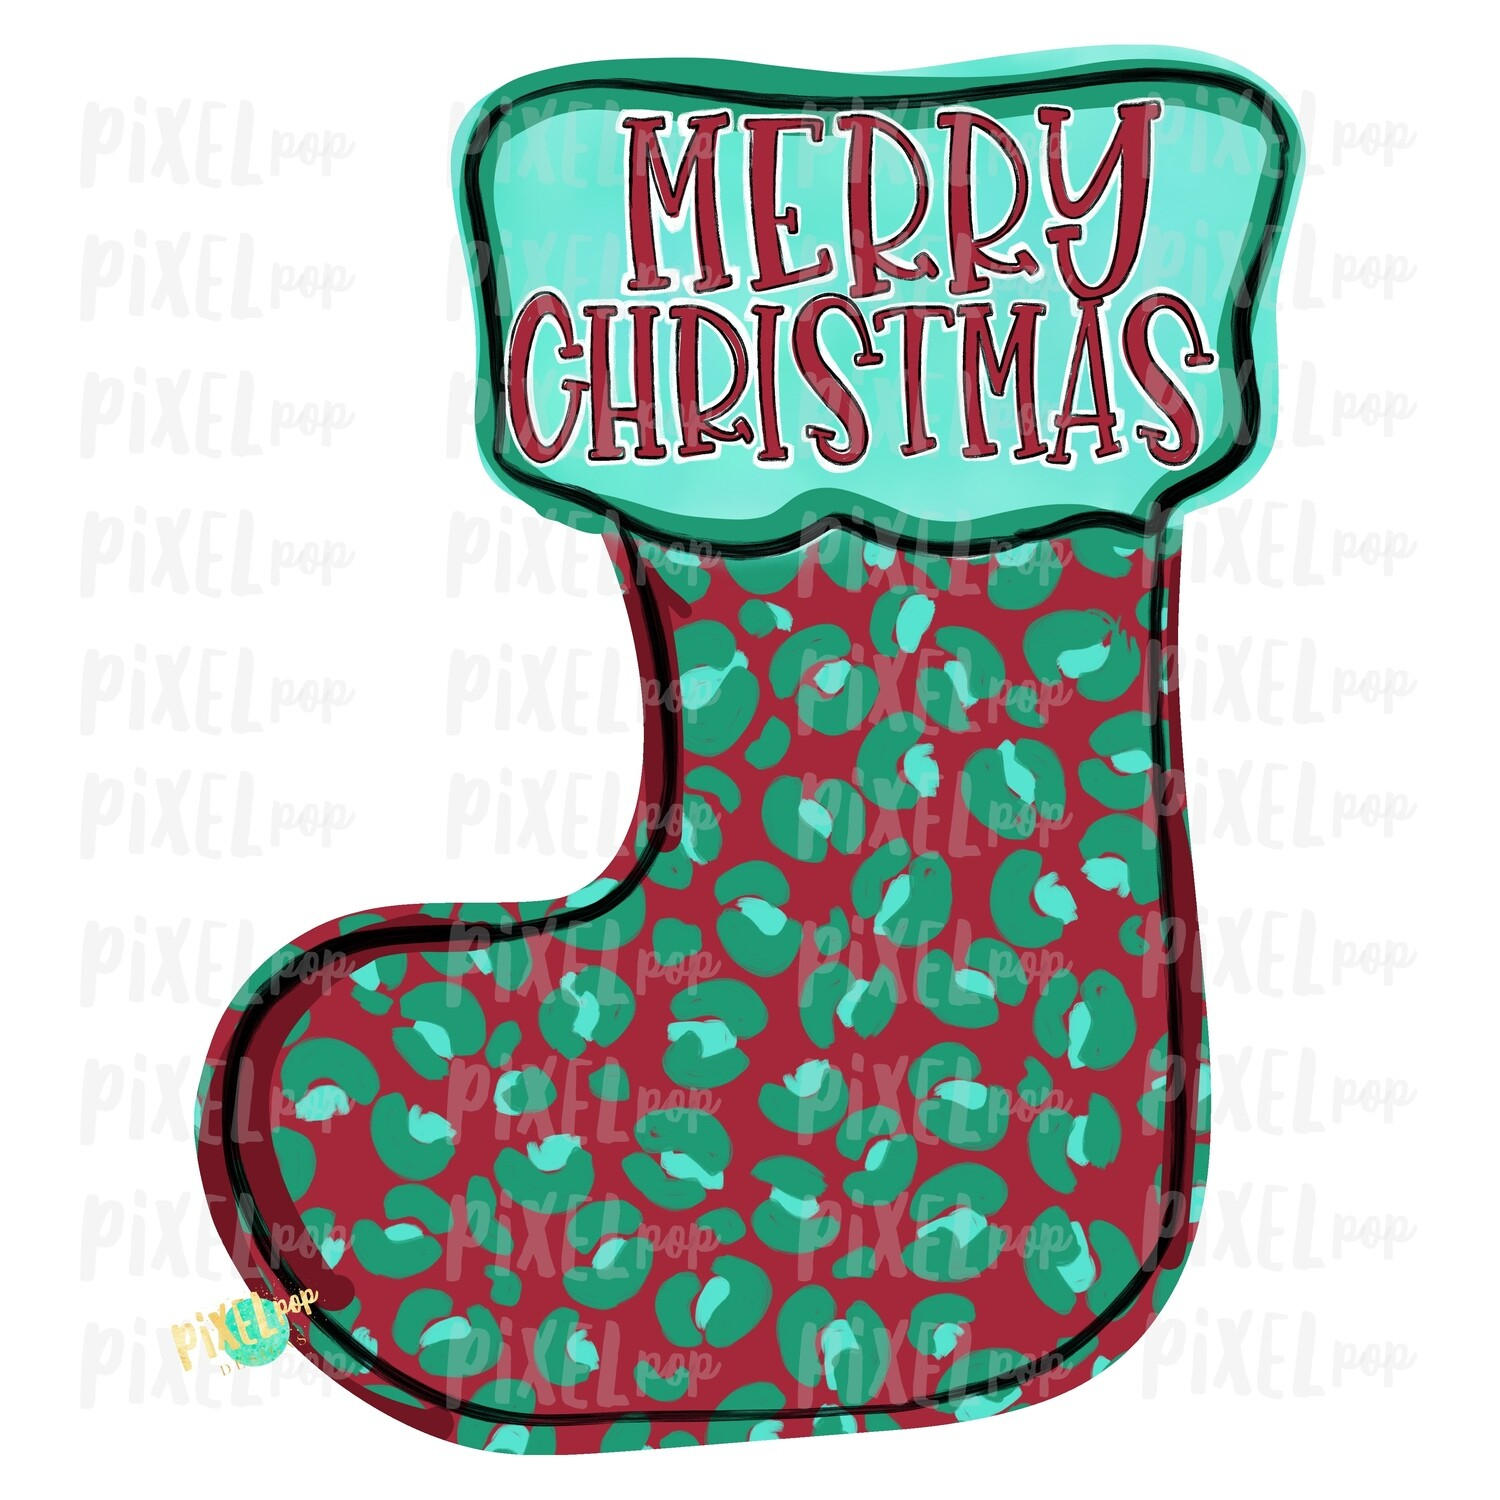 Leopard Print Red Mint Green Stocking Merry Christmas PNG | Sublimation Design | Snowman Clip Art Design | Printable | Digital Download | Hand Painted Digital Art